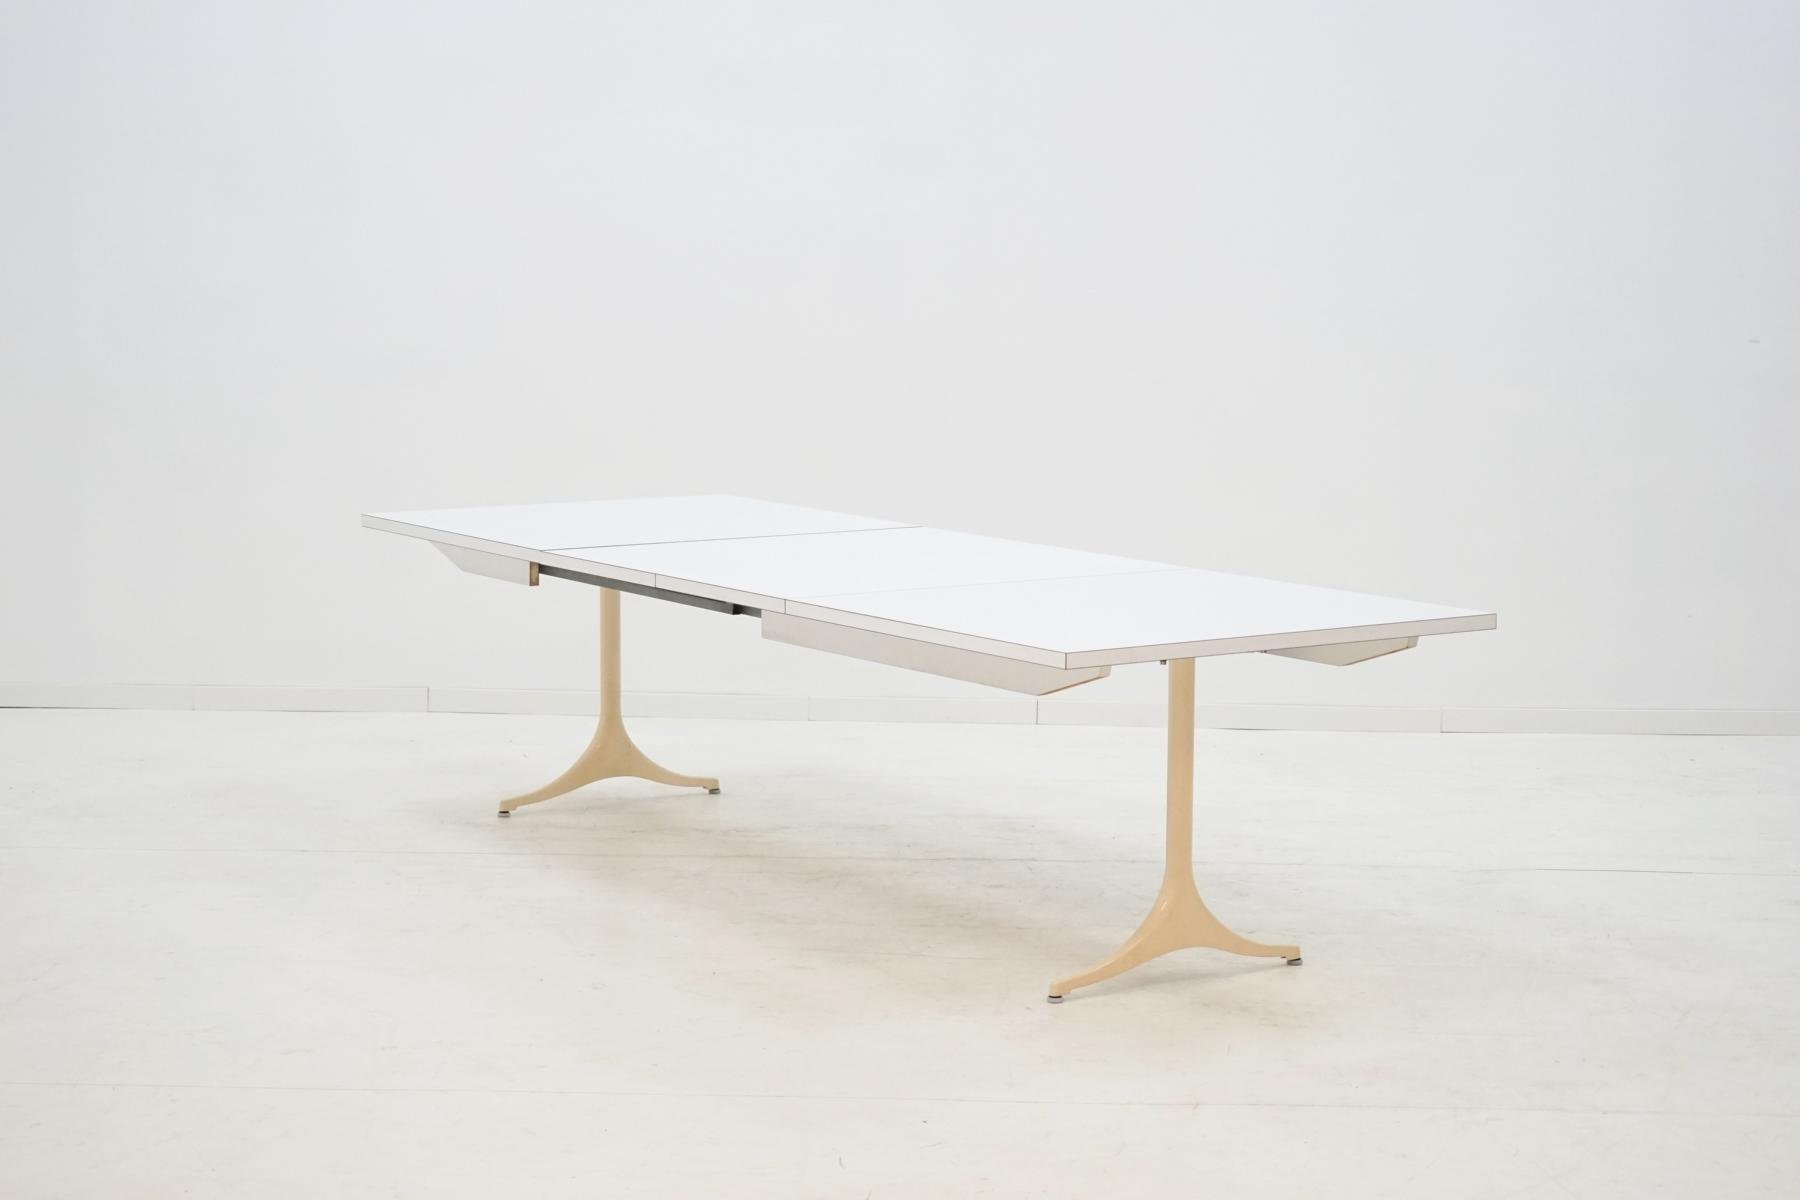 Vintage Extendable Model 5559 Dining Table by George Nelson for